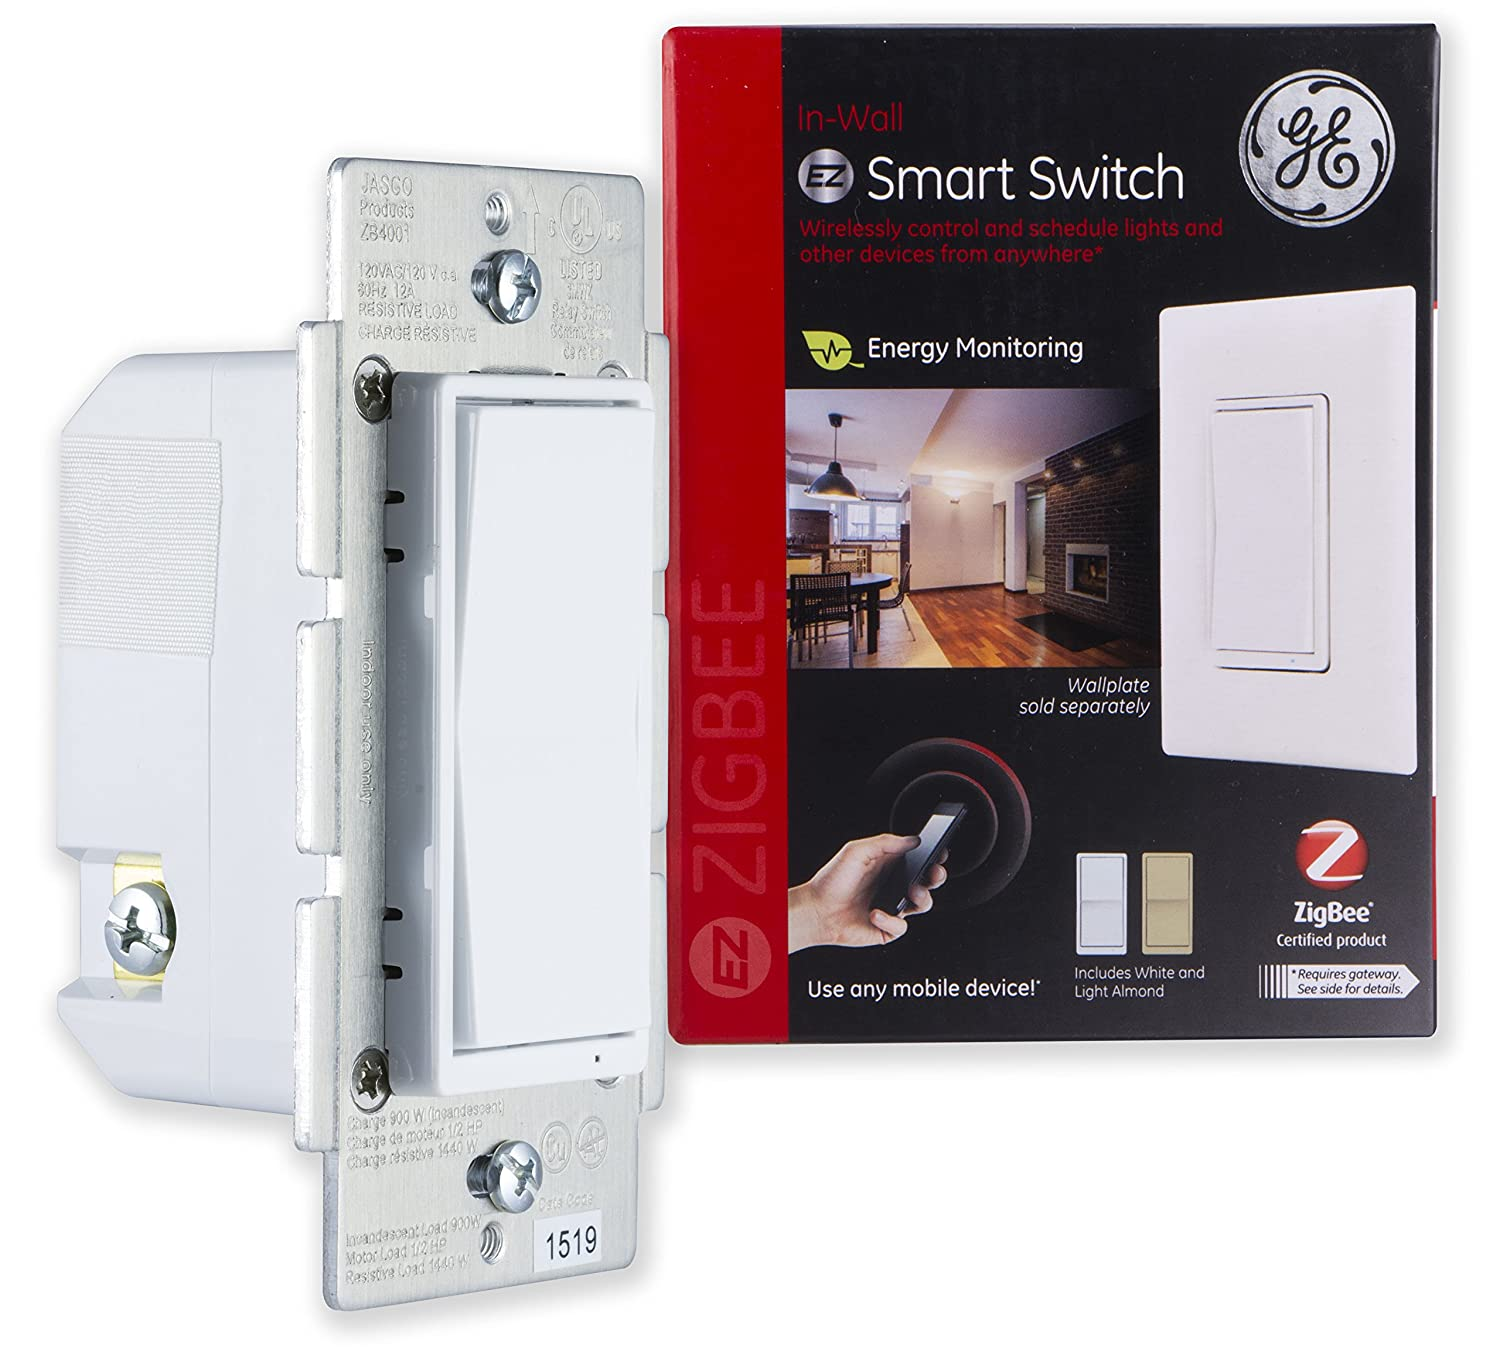 GE ZigBee Smart Lighting Control Switch, In-Wall, On/Off, LED & CFL Compatible, Energy Monitoring, HA1.2, White & Light Almond Paddles, Works with Echo Plus, Echo Show, and Deco M9 Plus, 45856GE